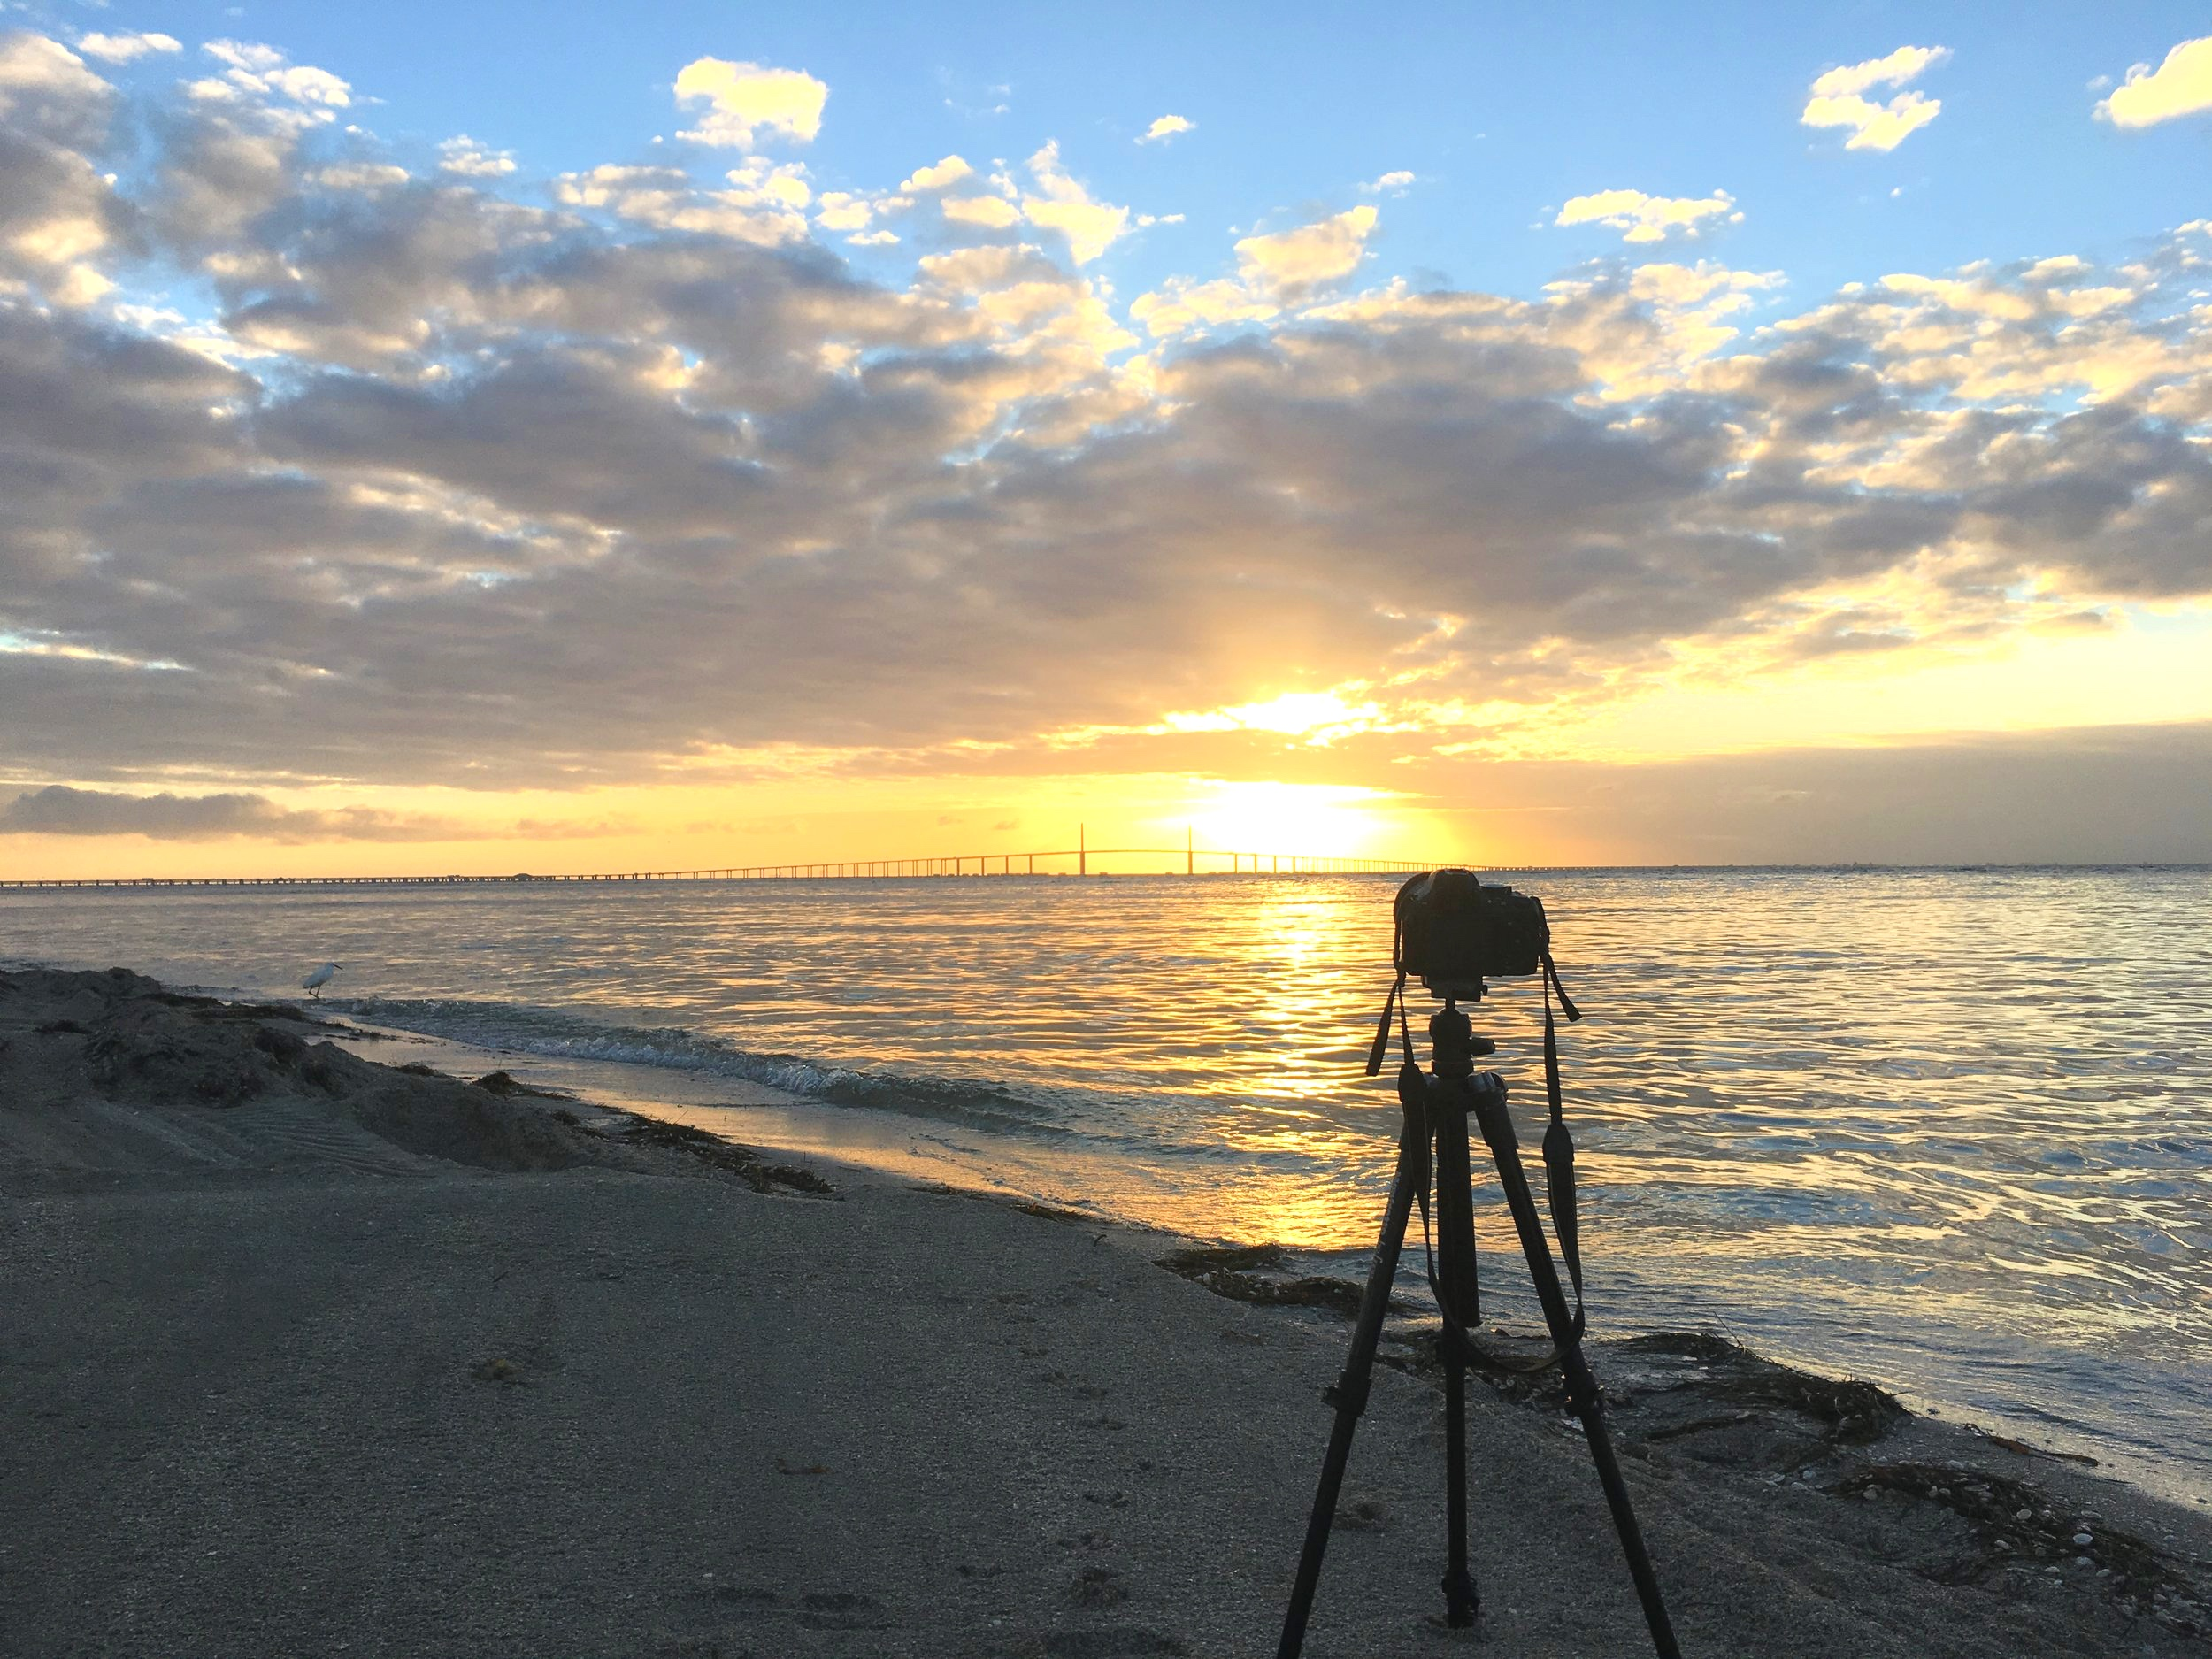 Camera in front of the Sunshine Skyway Bridge